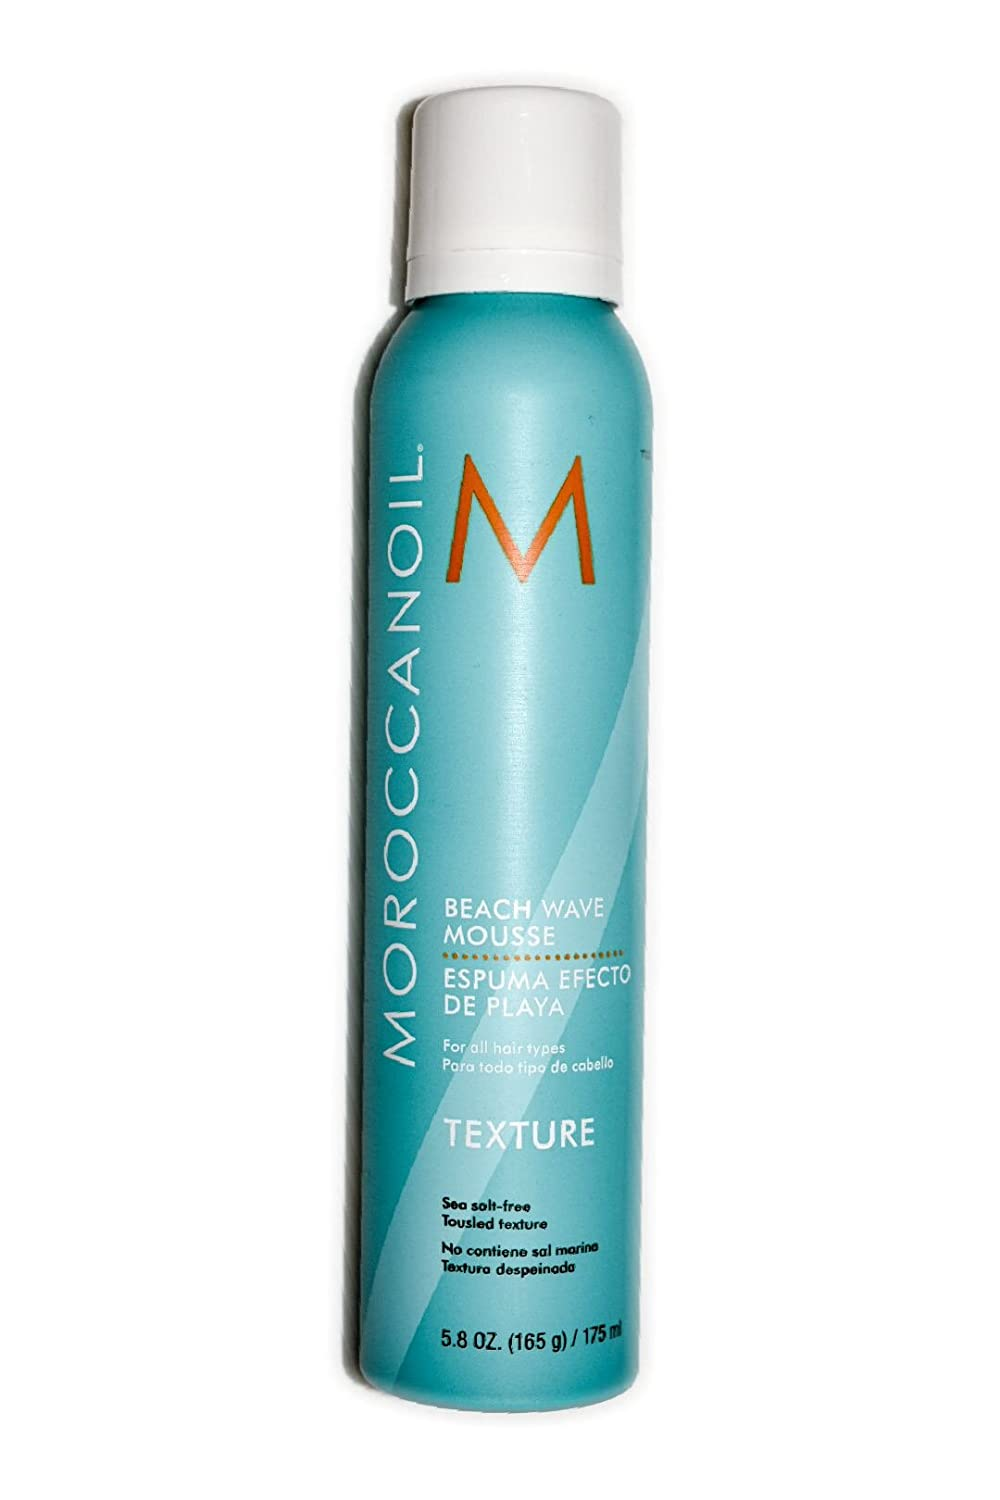 Moroccanoil Texture Beach Wave Mousse 5.8 oz 175 Ml by Moroccanoil